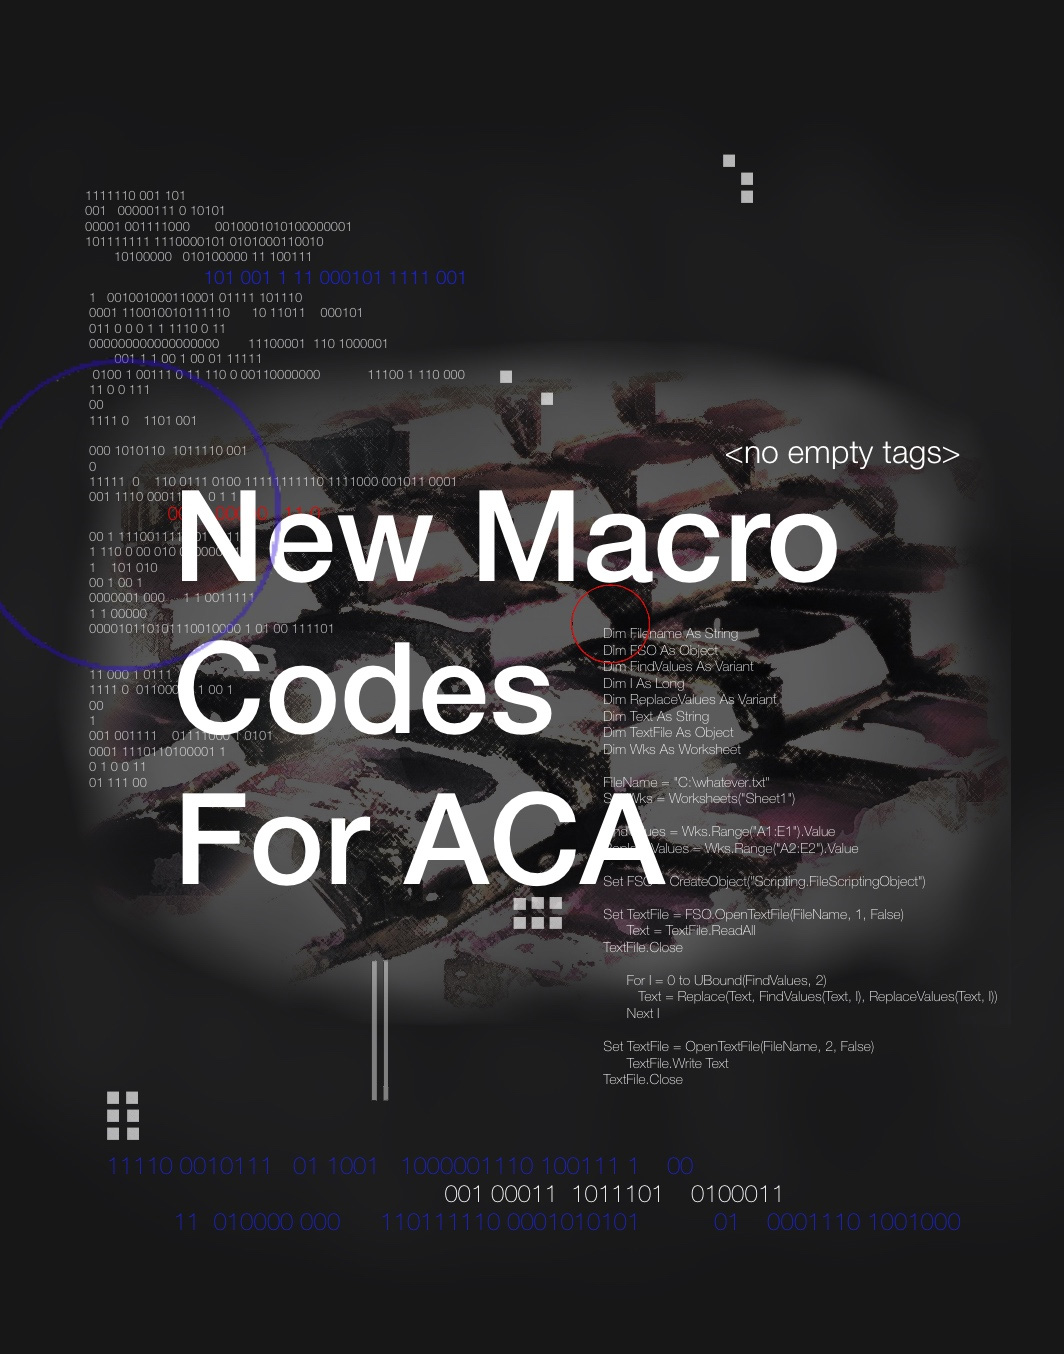 ACA - New Macros for 2017